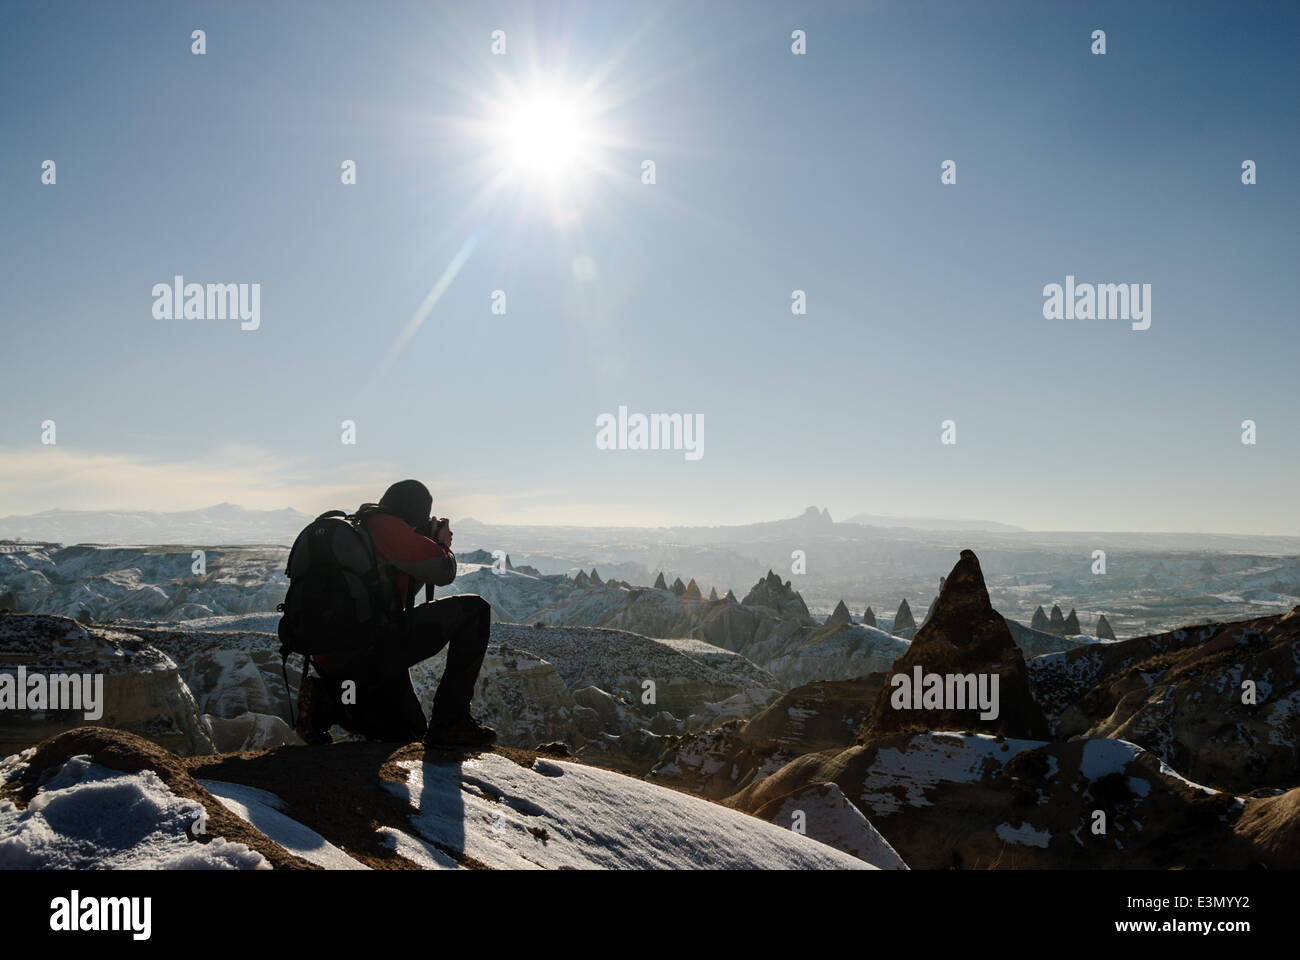 Silhouette of a man taking pictures of a landscape, Goreme, Capadocia, Turkia - Stock Image